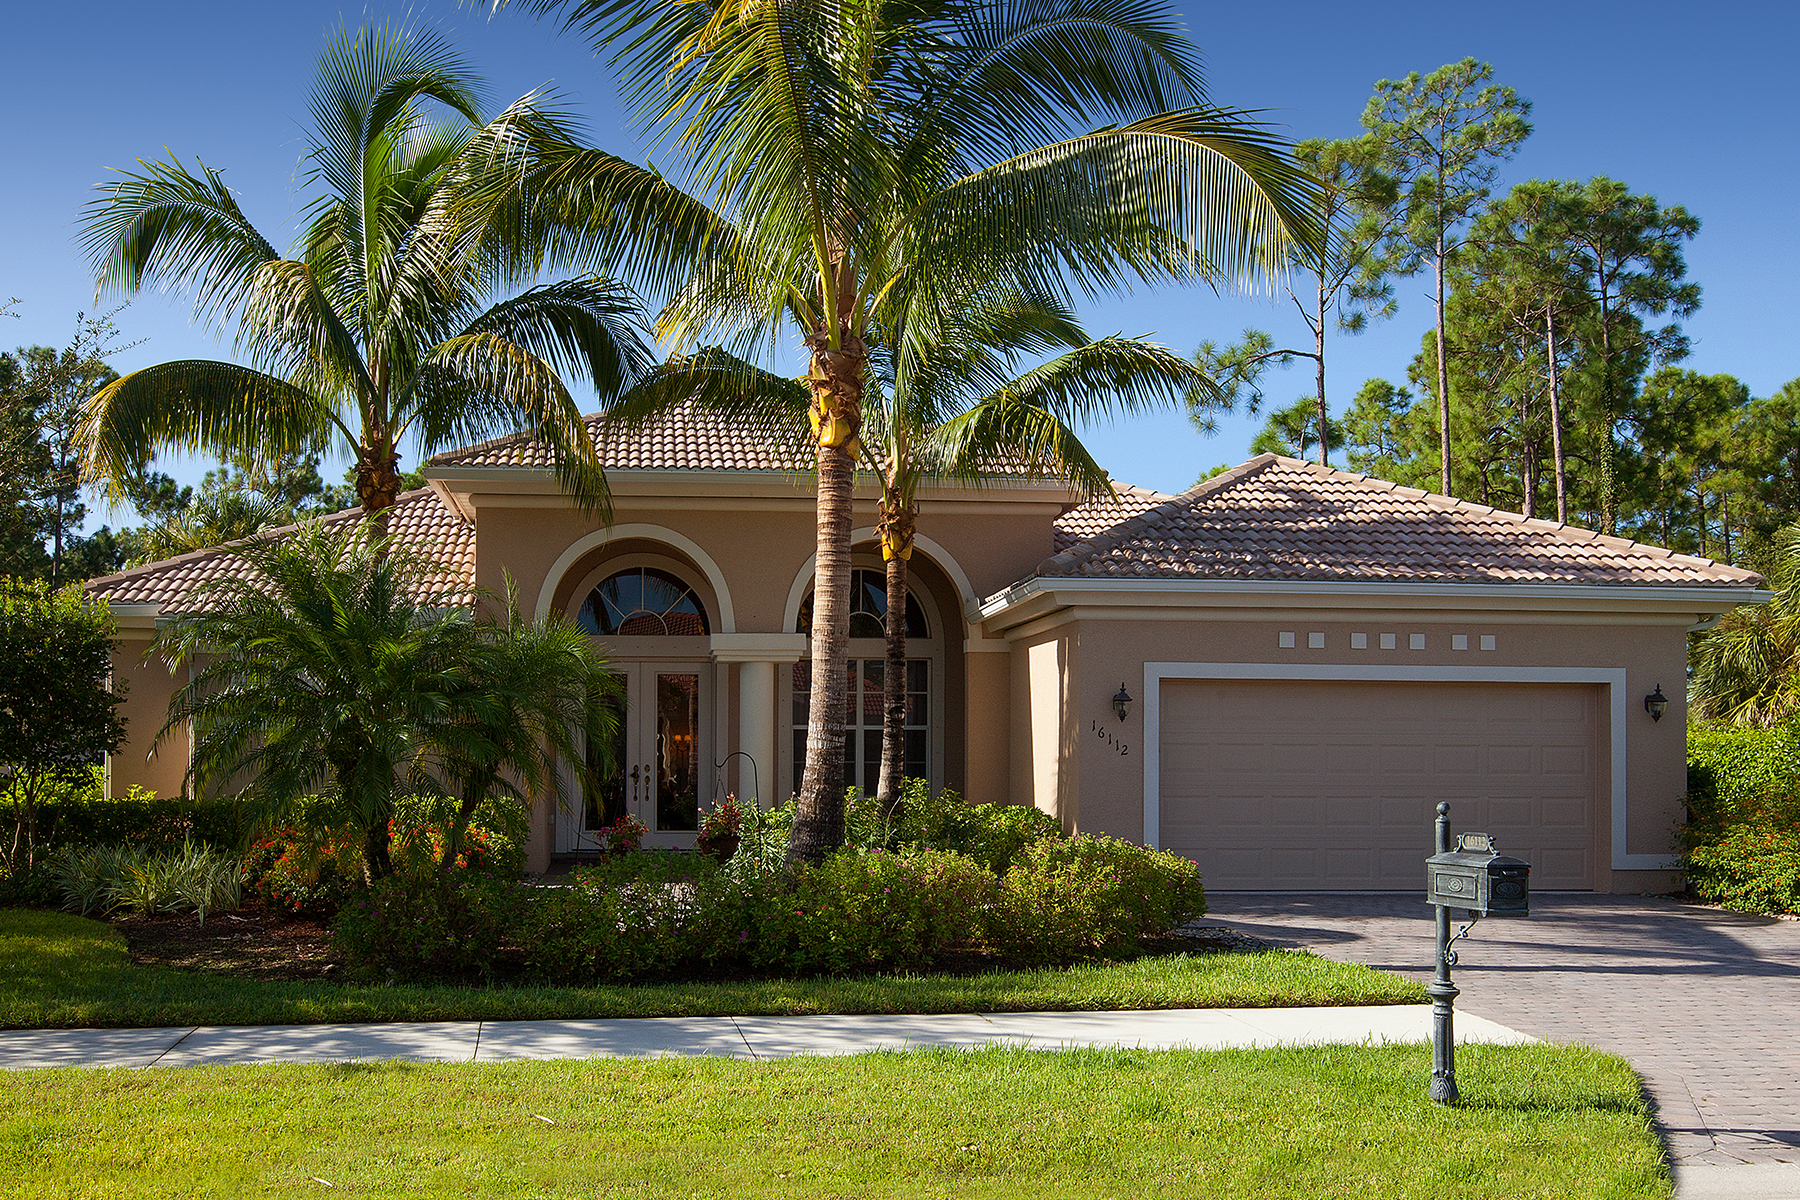 Single Family Home for Sale at DELASOL 16112 Parque Ln Naples, Florida 34110 United States